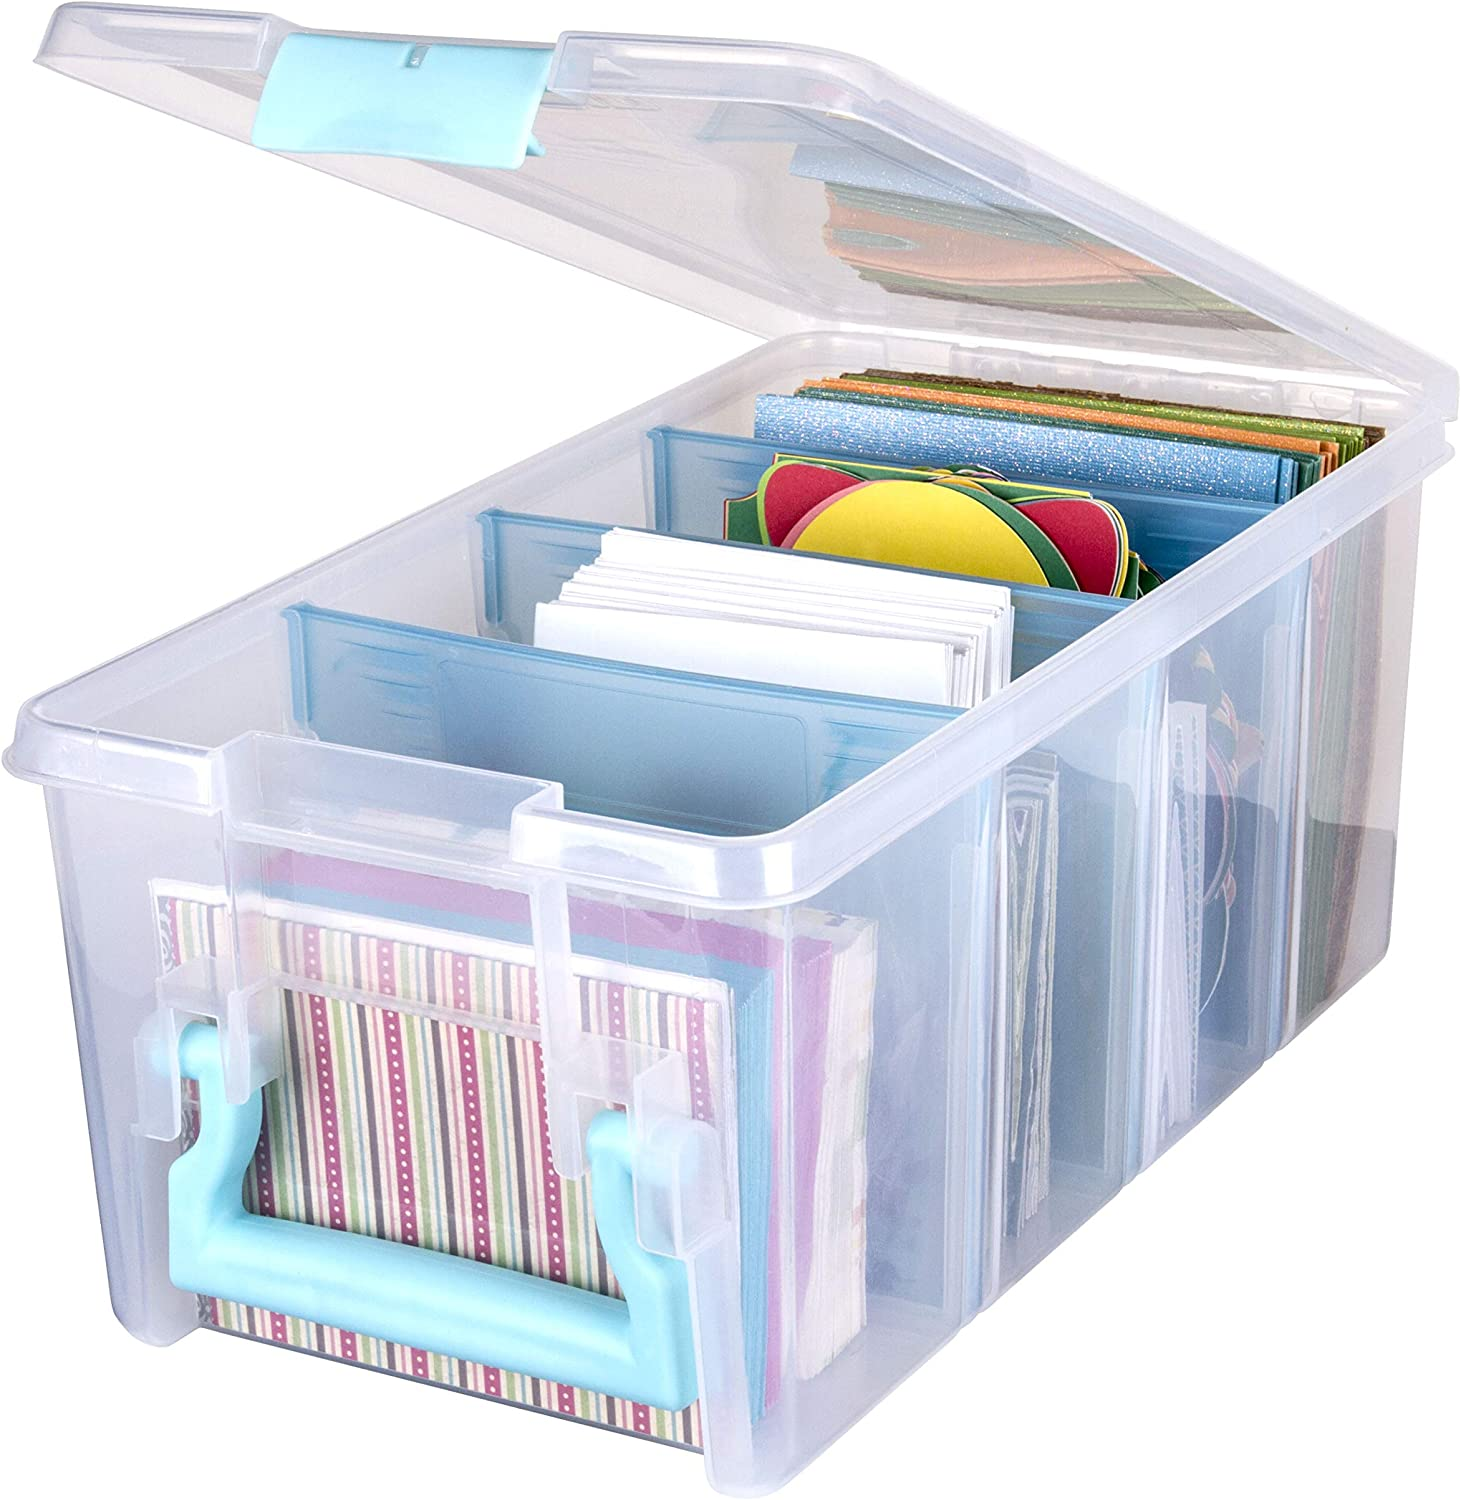 ArtBin 6925AA Semi Satchel with Removable Dividers, Portable Art & Craft Organizer with Handle, [1] Plastic Storage Case, Clear with Aqua Accents